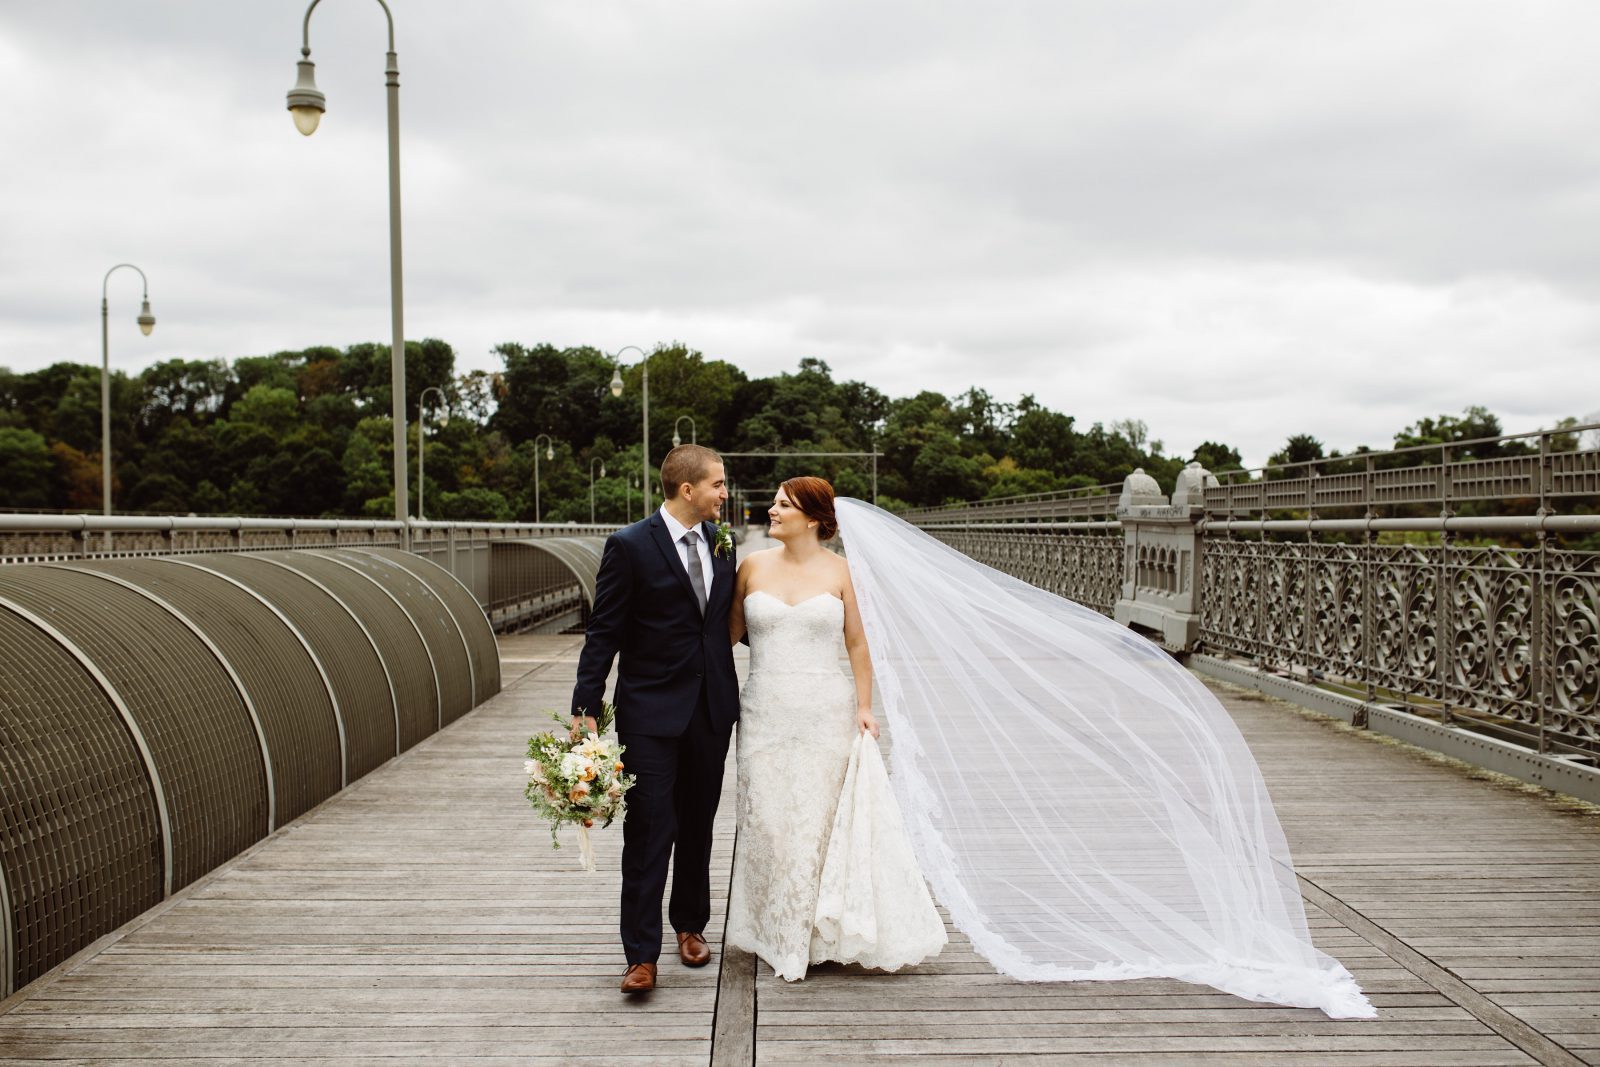 Bride in lace gown and cathedral veil on bridge with groom at Ridgeland Mansion Wedding. Bouquet by Fresh Designs Florist. Photo by Ali & Paul Co.